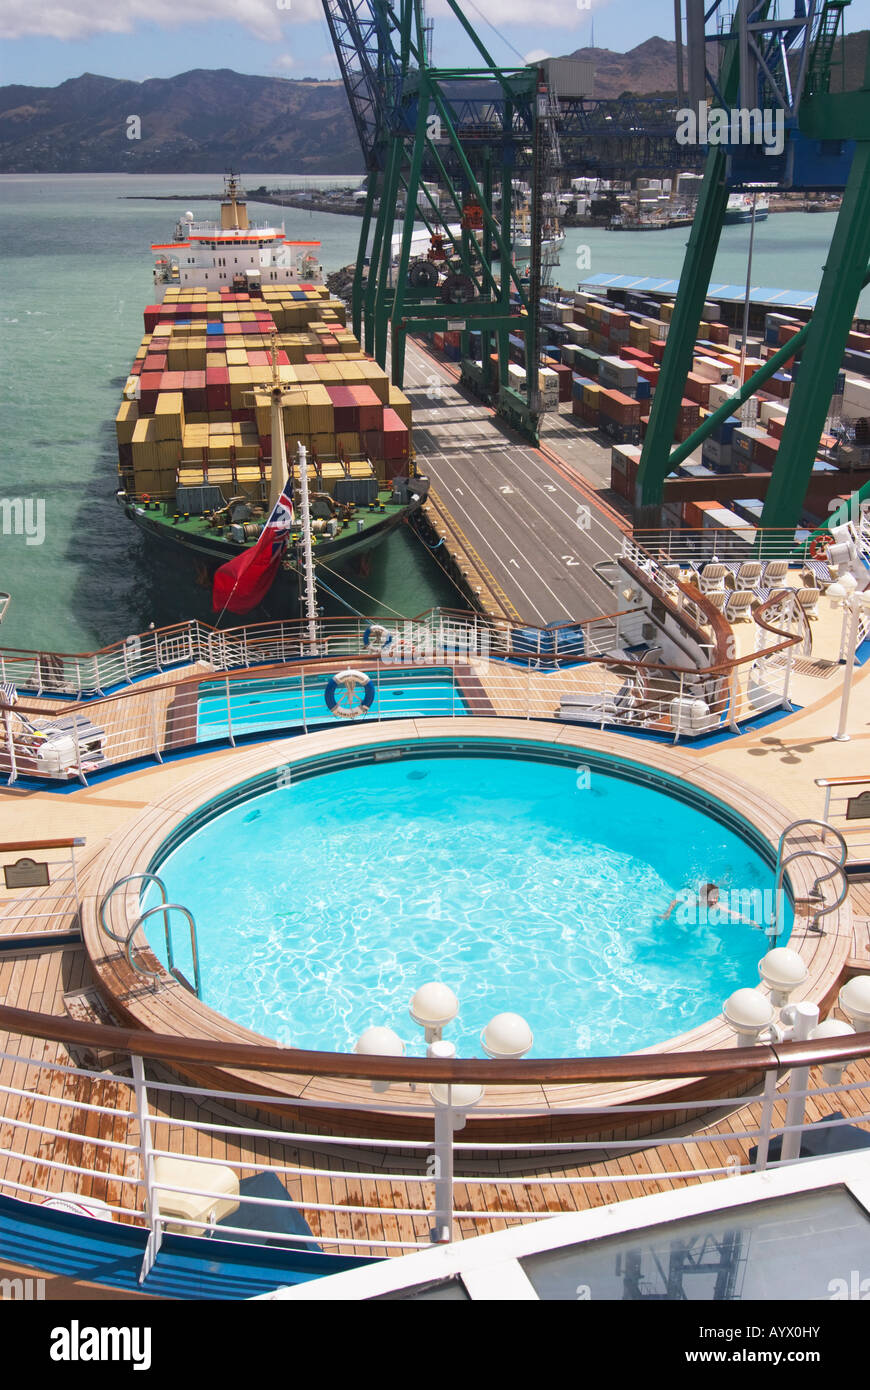 Aft decks of a cruise ship with swimming pool and a container ship berthed astern in Lyttelton, New Zealand Stock Photo